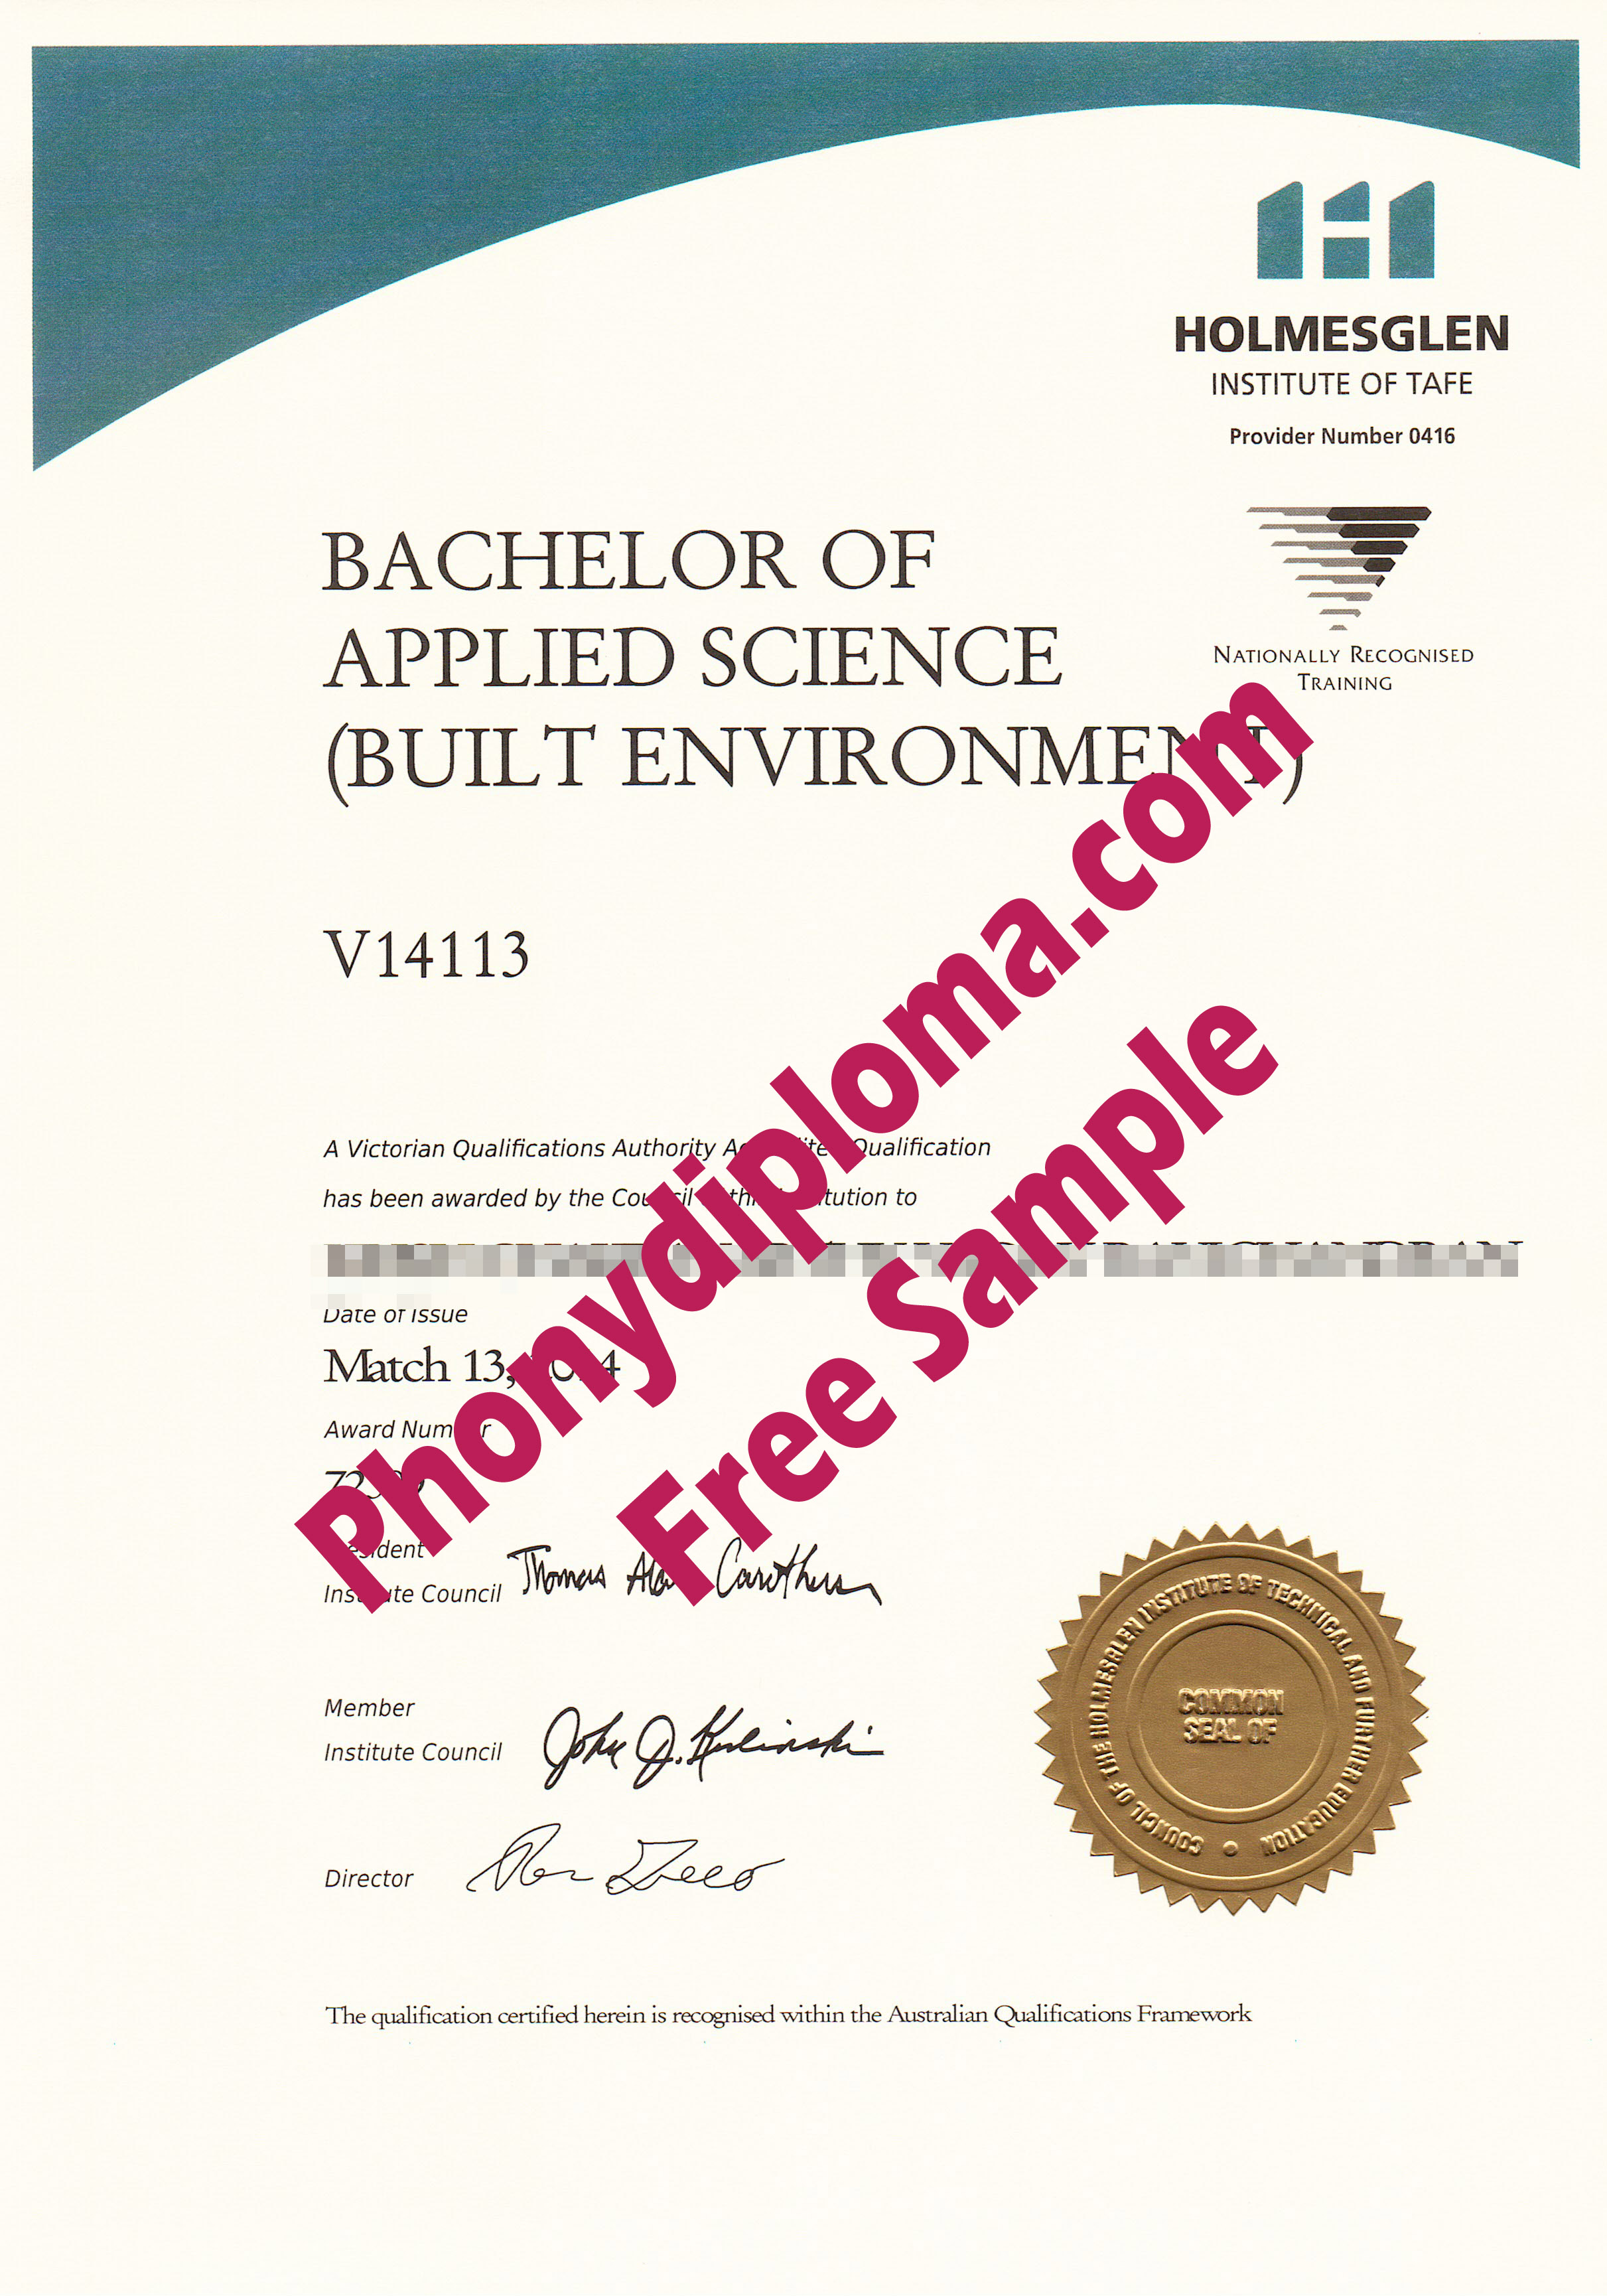 Holmesglen Institute Of Tafe Free Sample From Phonydiploma